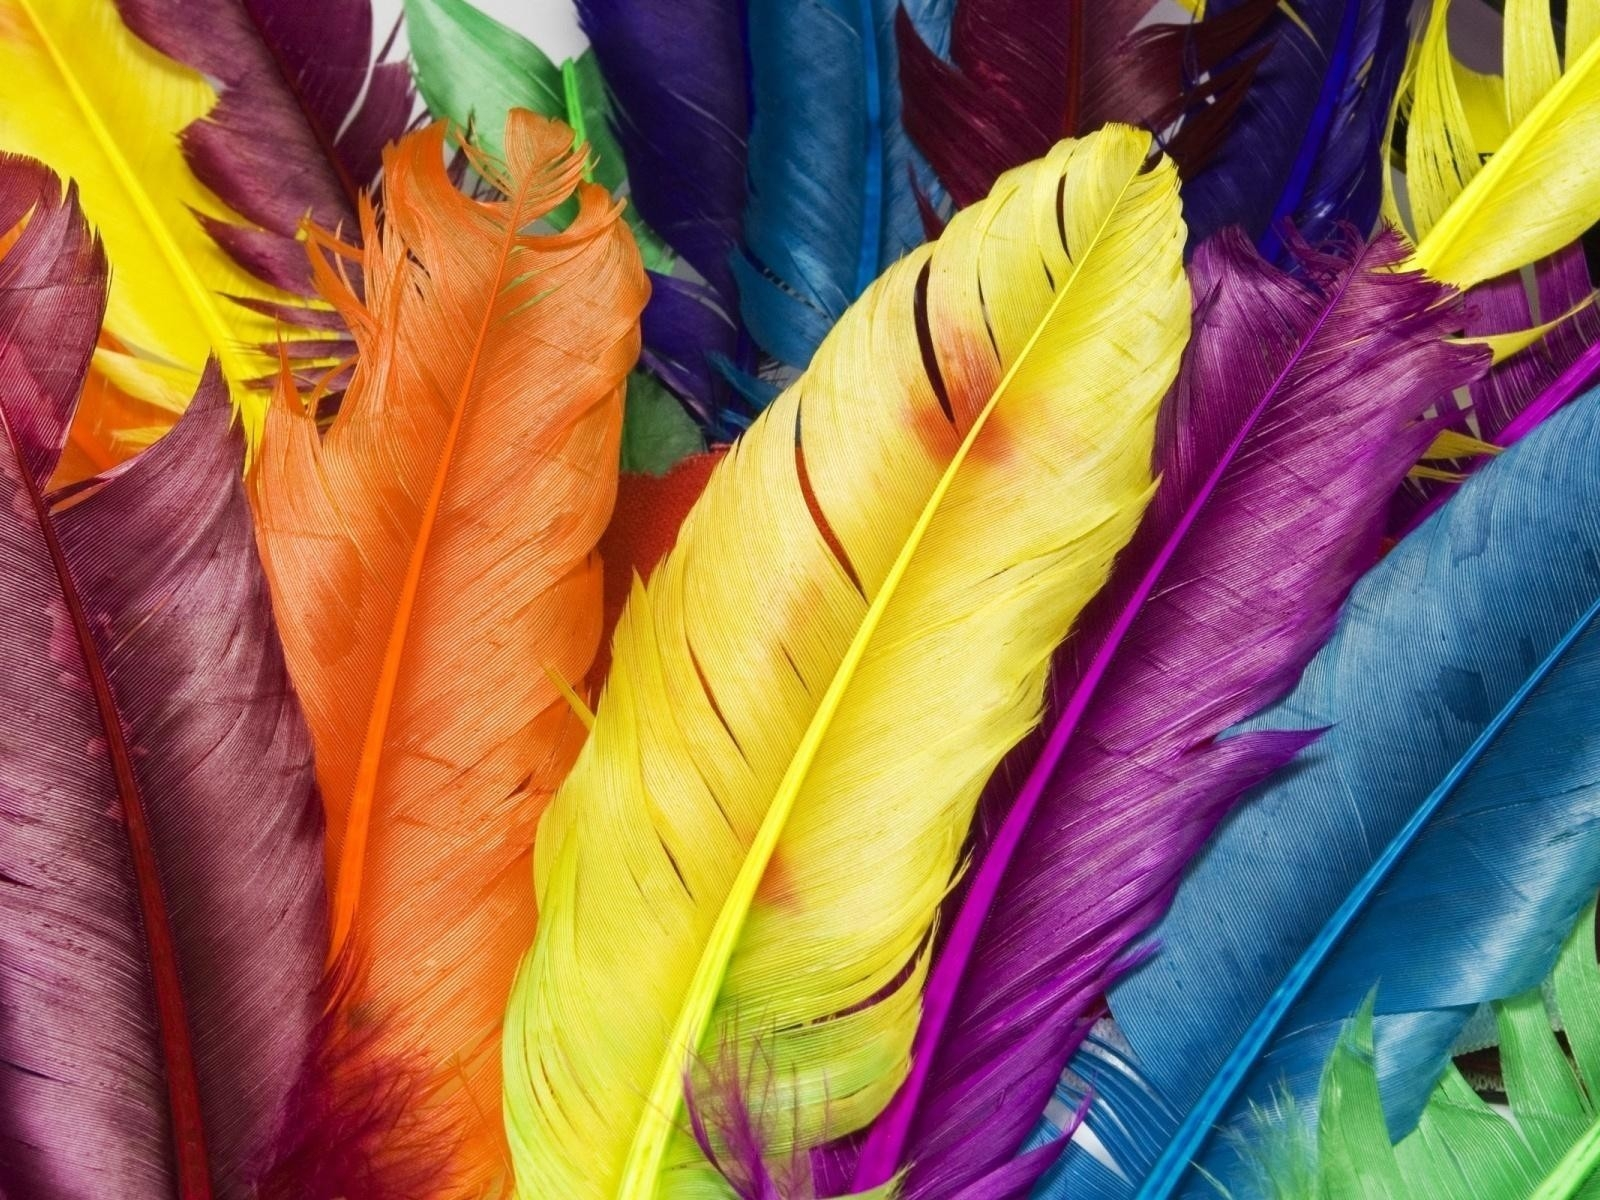 Colorful Feathers for 1600 x 1200 resolution